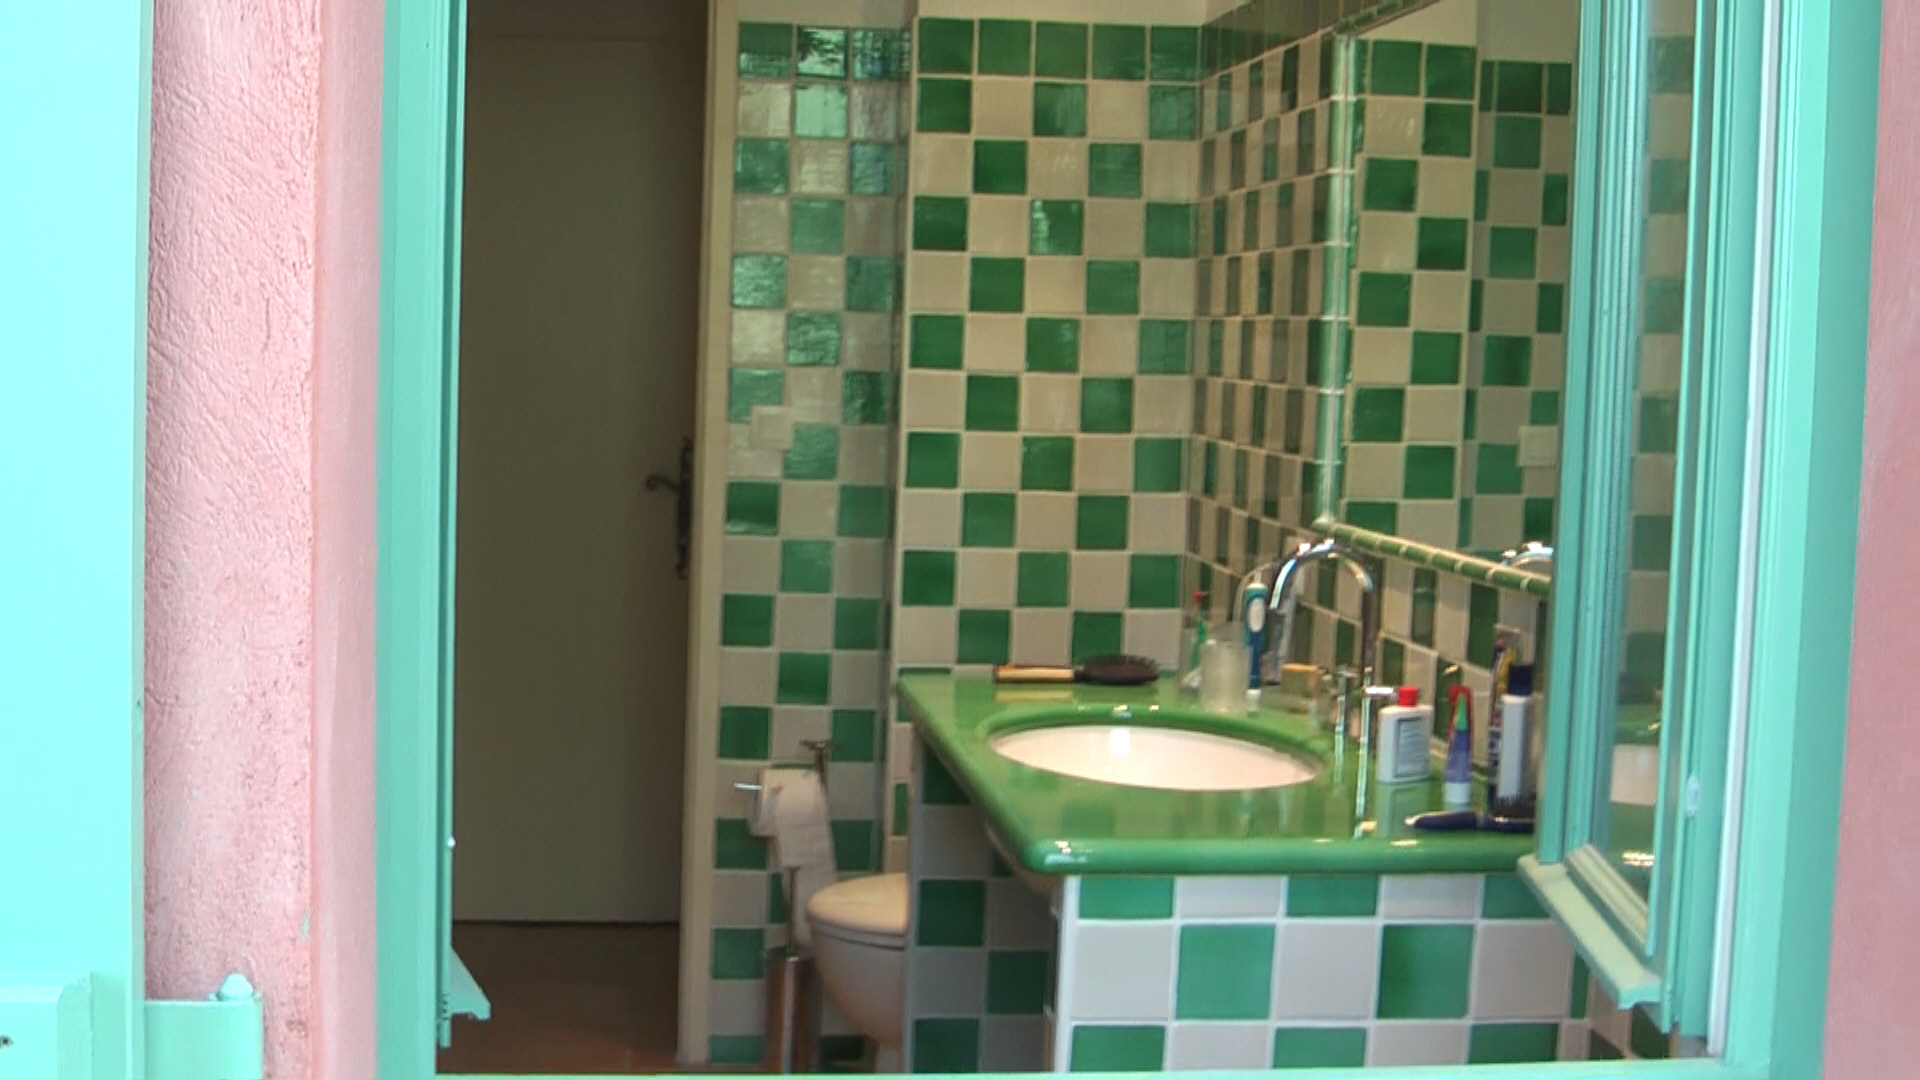 The Floors Are All Covered With Provencal Style Tiles. A Housework Room  With Washing/drying Machine Is Also Located ...